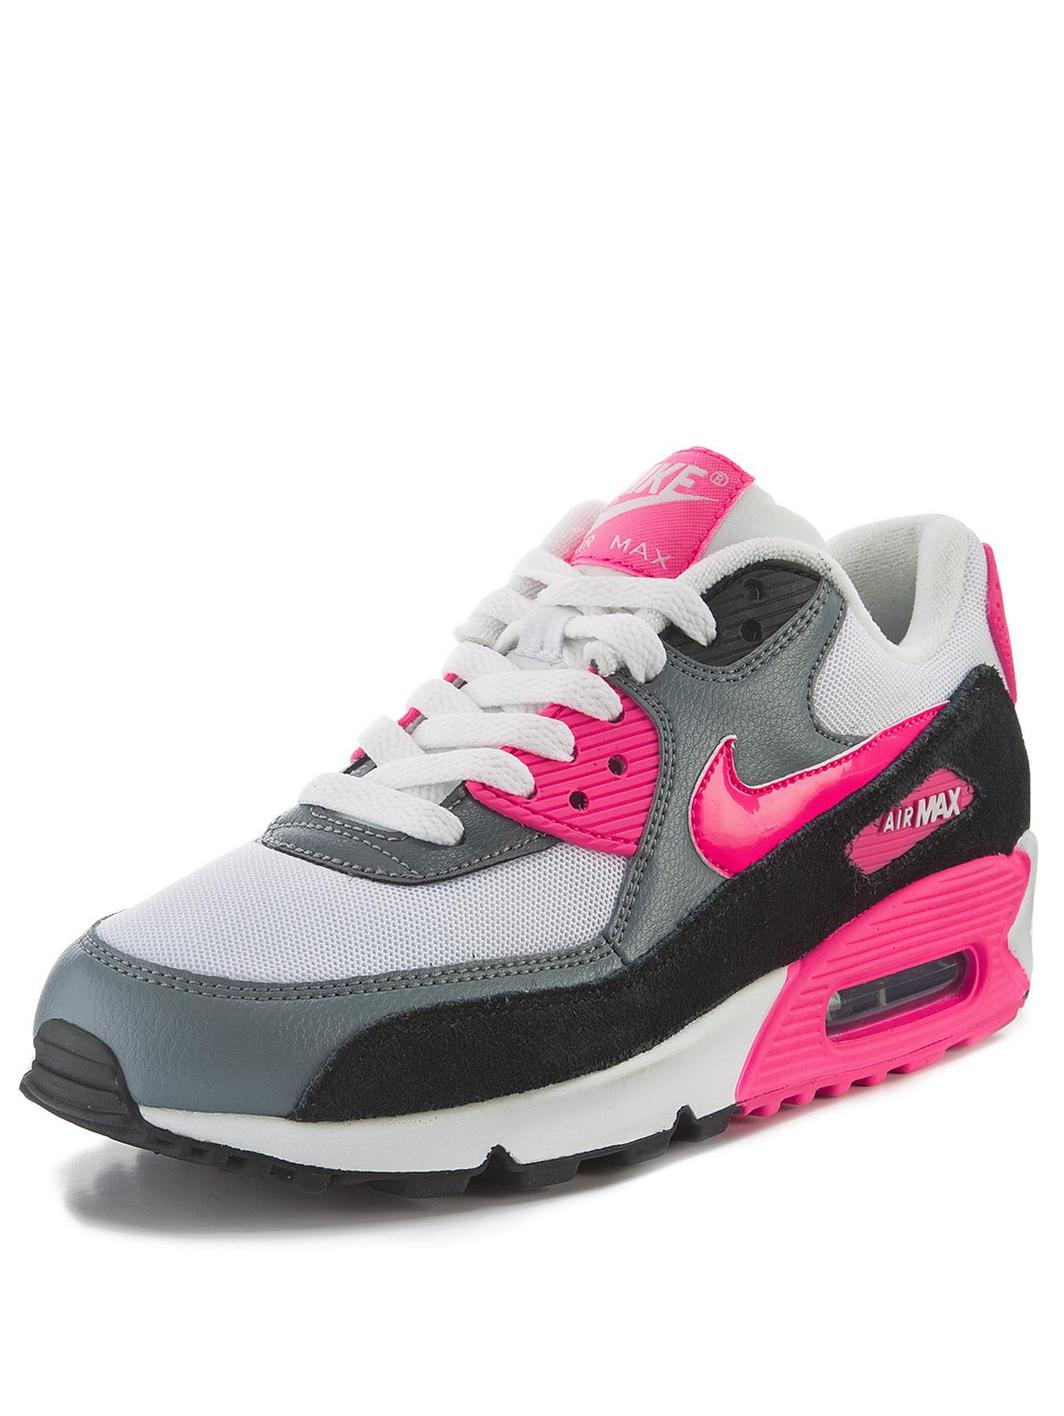 nike air max 90 essential trainers in pink for men white pink black lyst. Black Bedroom Furniture Sets. Home Design Ideas